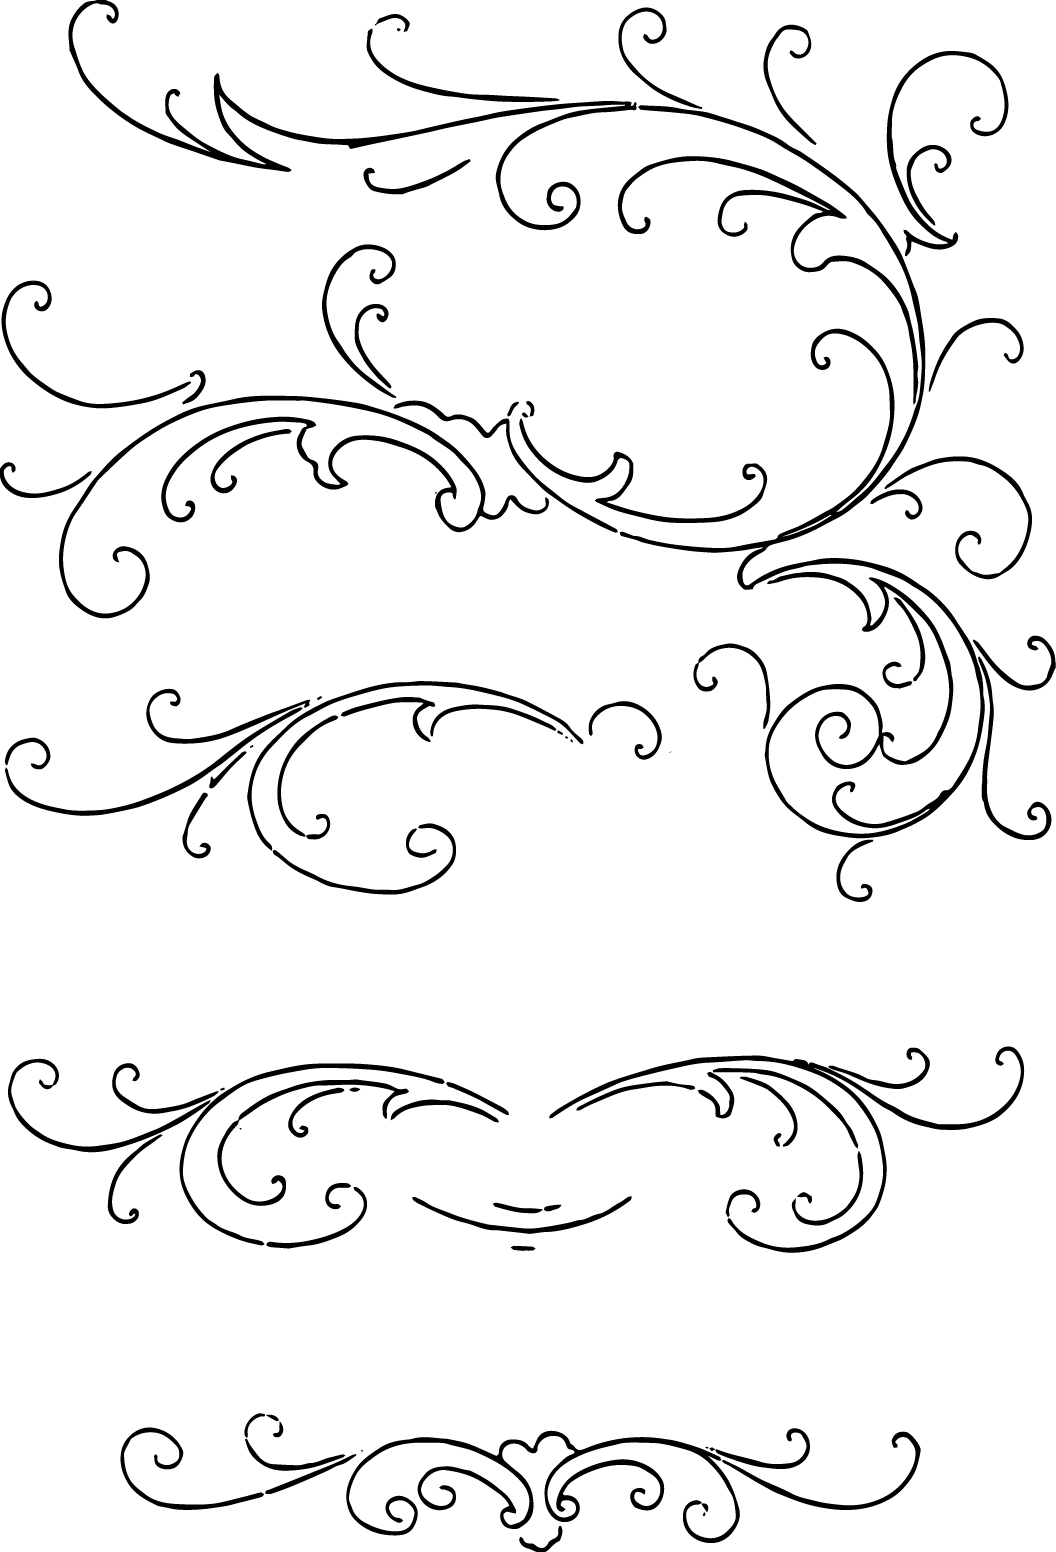 Free Clip Art Download & Clip Art Download Clip Art Images.